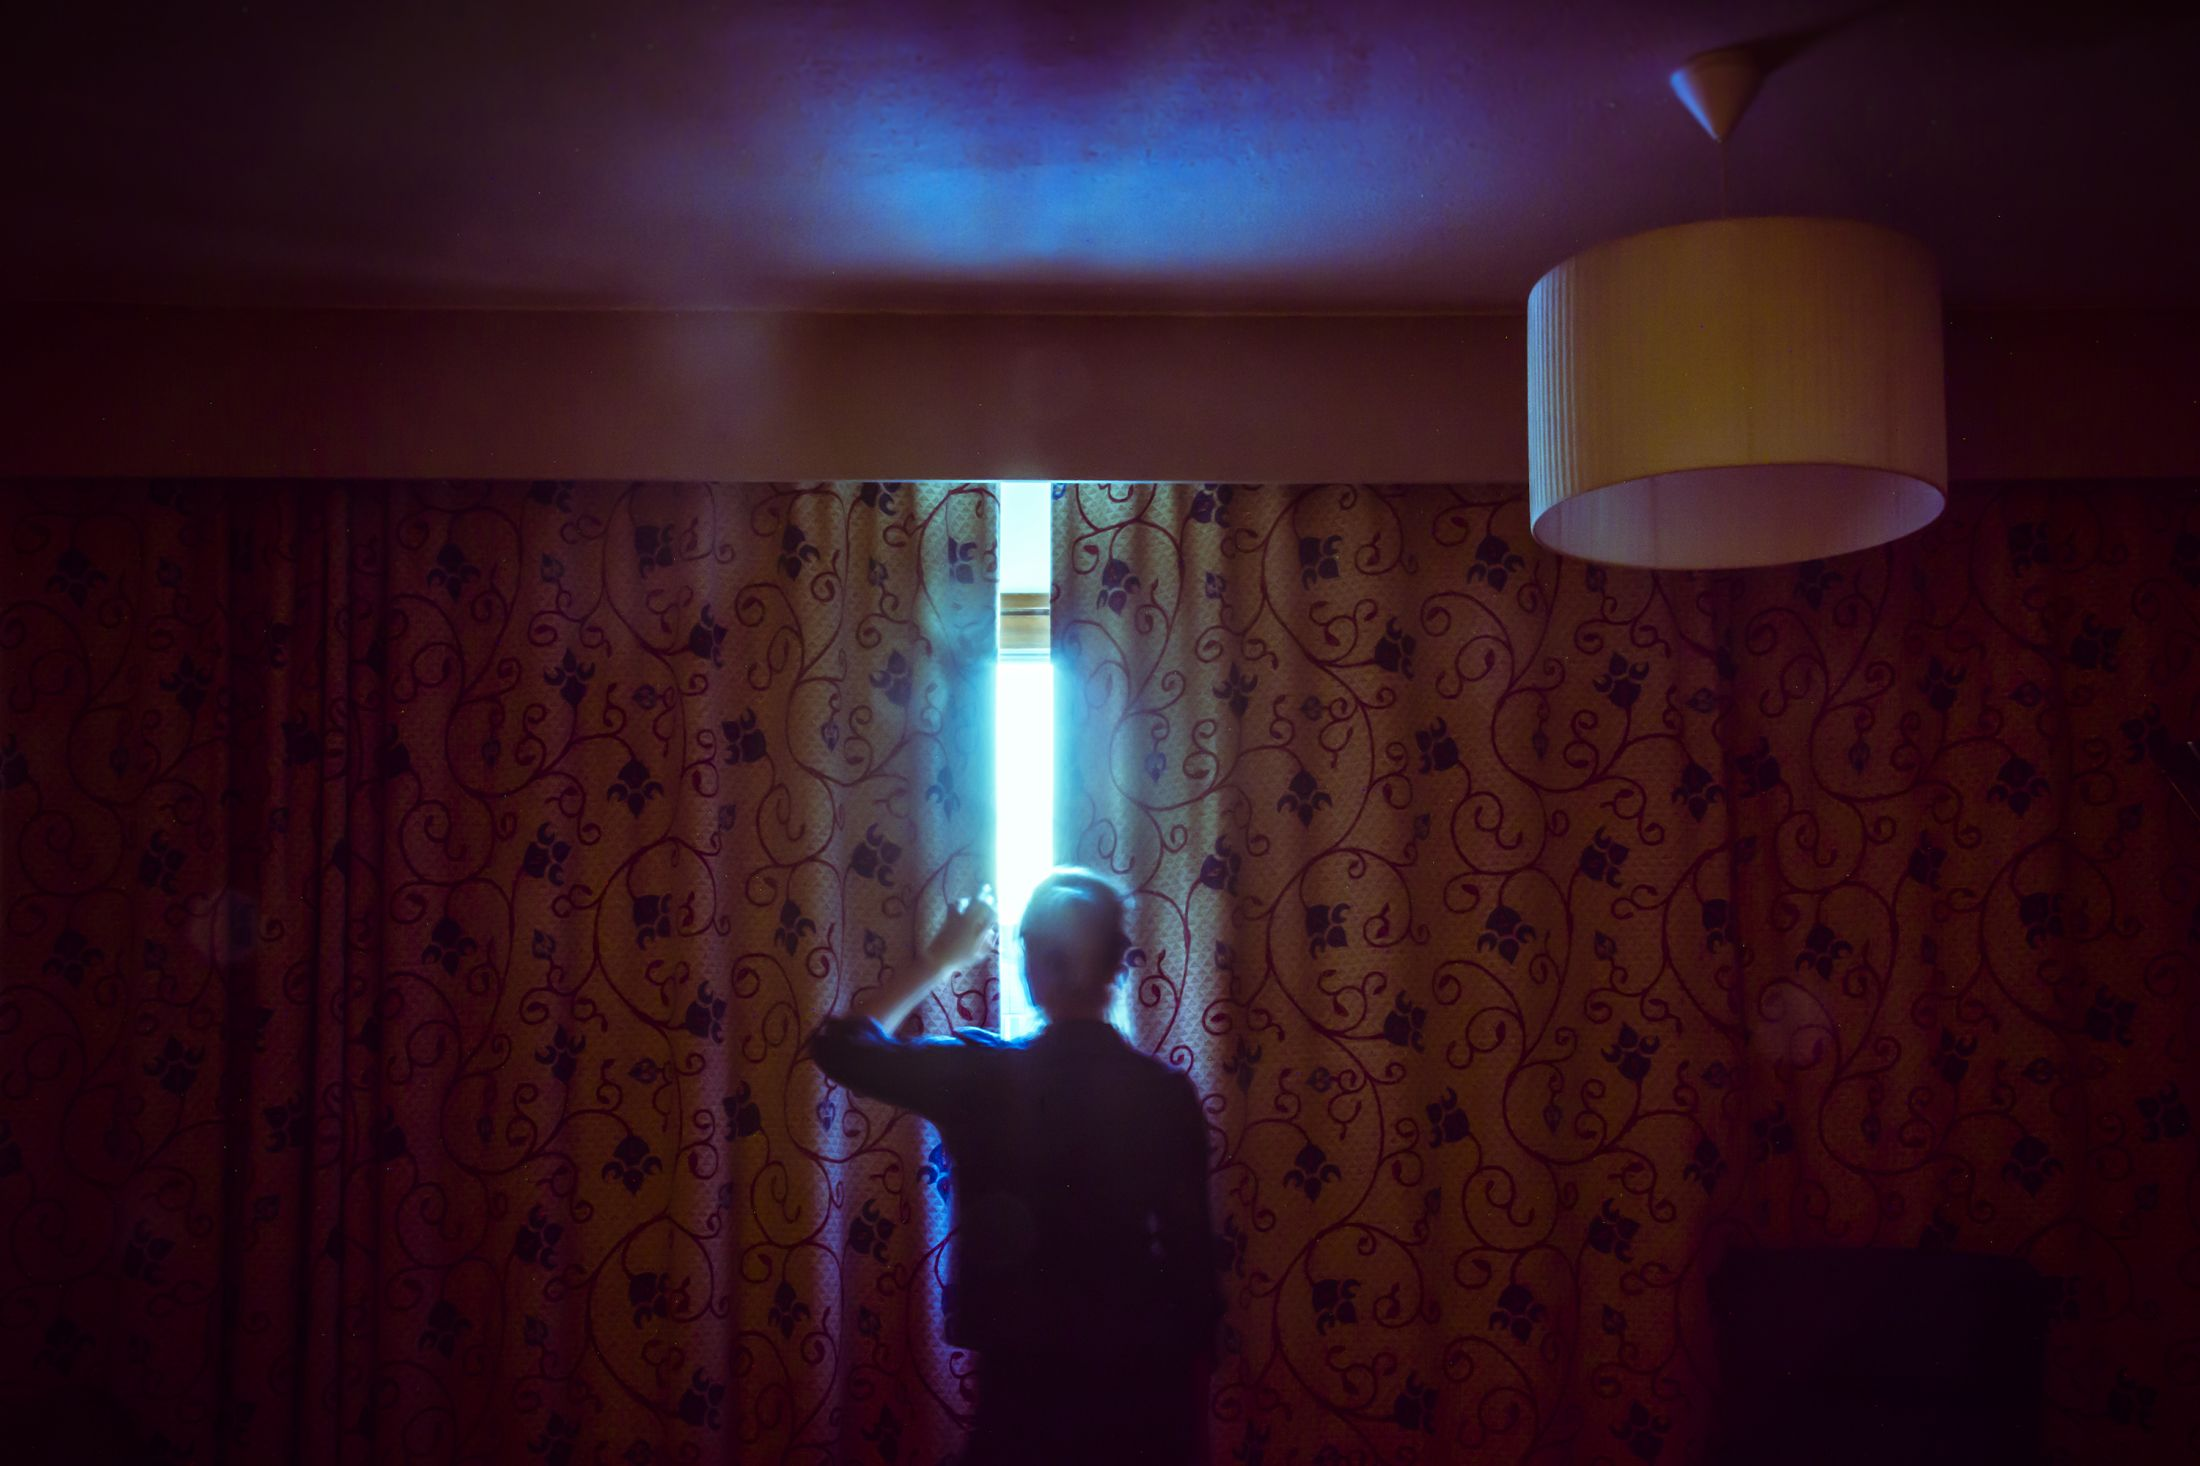 A photo of a person peaking through the curtains in their living room. The room is fairly dark - you can barely make out a vine pattern on the curtains, and it is bright outside, so the brightness is almost blinding.